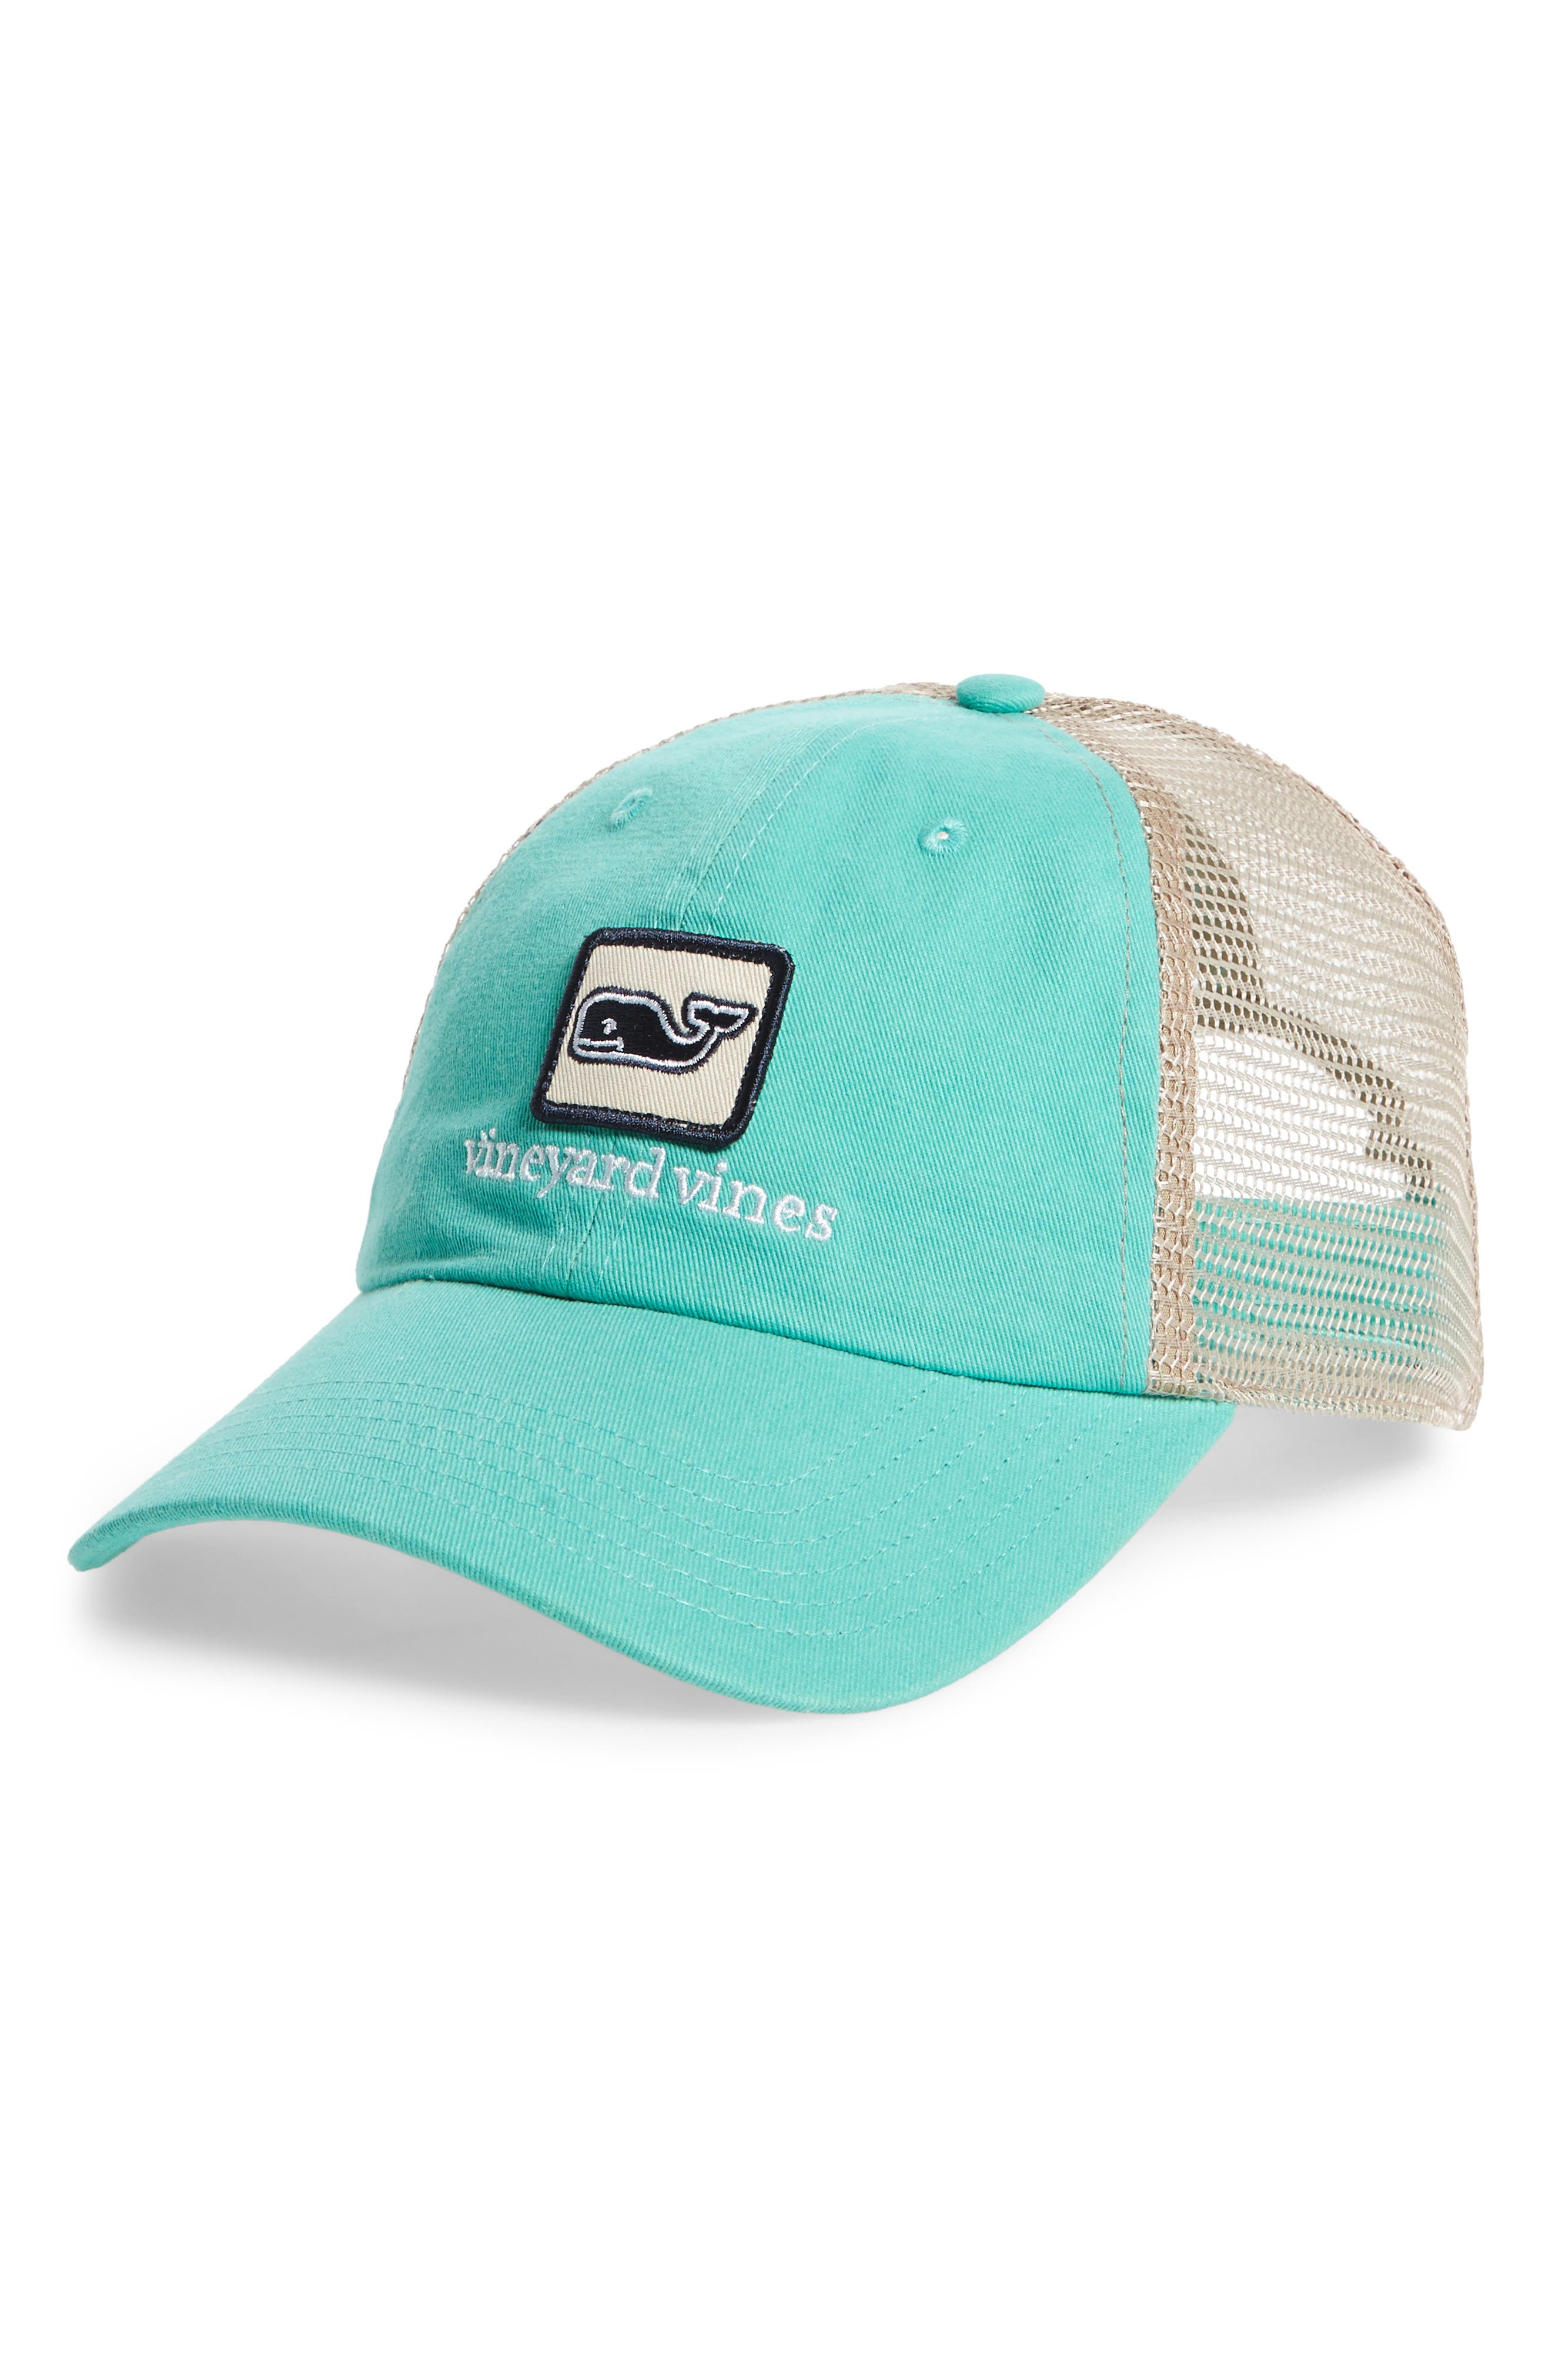 vineyard vines Deconstructed Trucker Cap